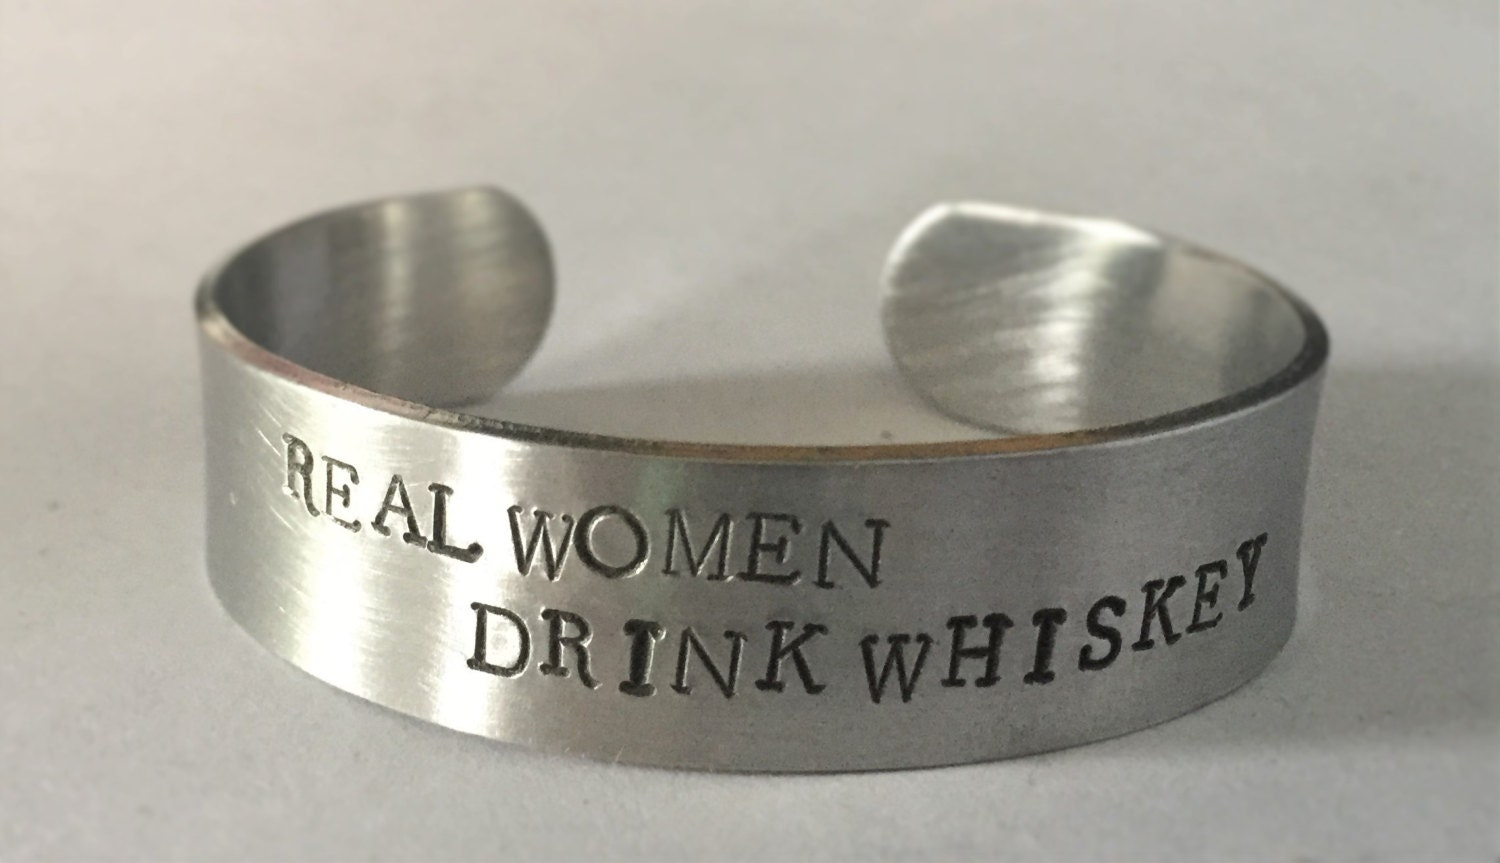 REAL WOMEN DRINK Whiskey, cuff bracelet, stamped bracelet, stamped jewelry, copper bracelet, real women, whiskey, bangle bracelet